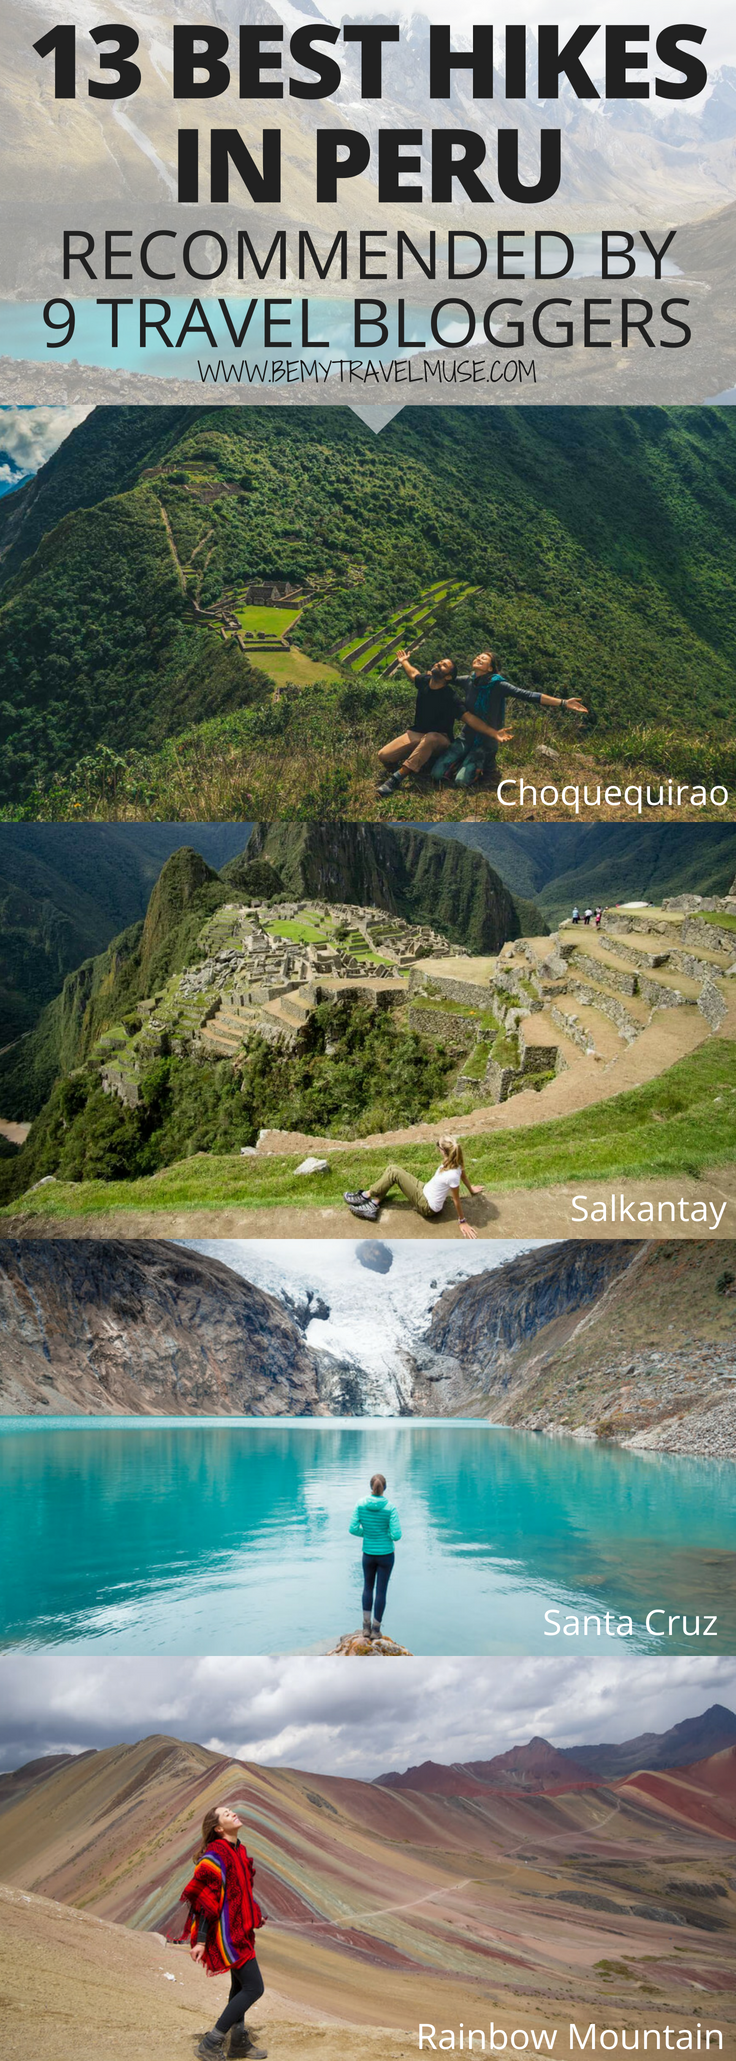 Photo of The 13 Best Hikes in Peru